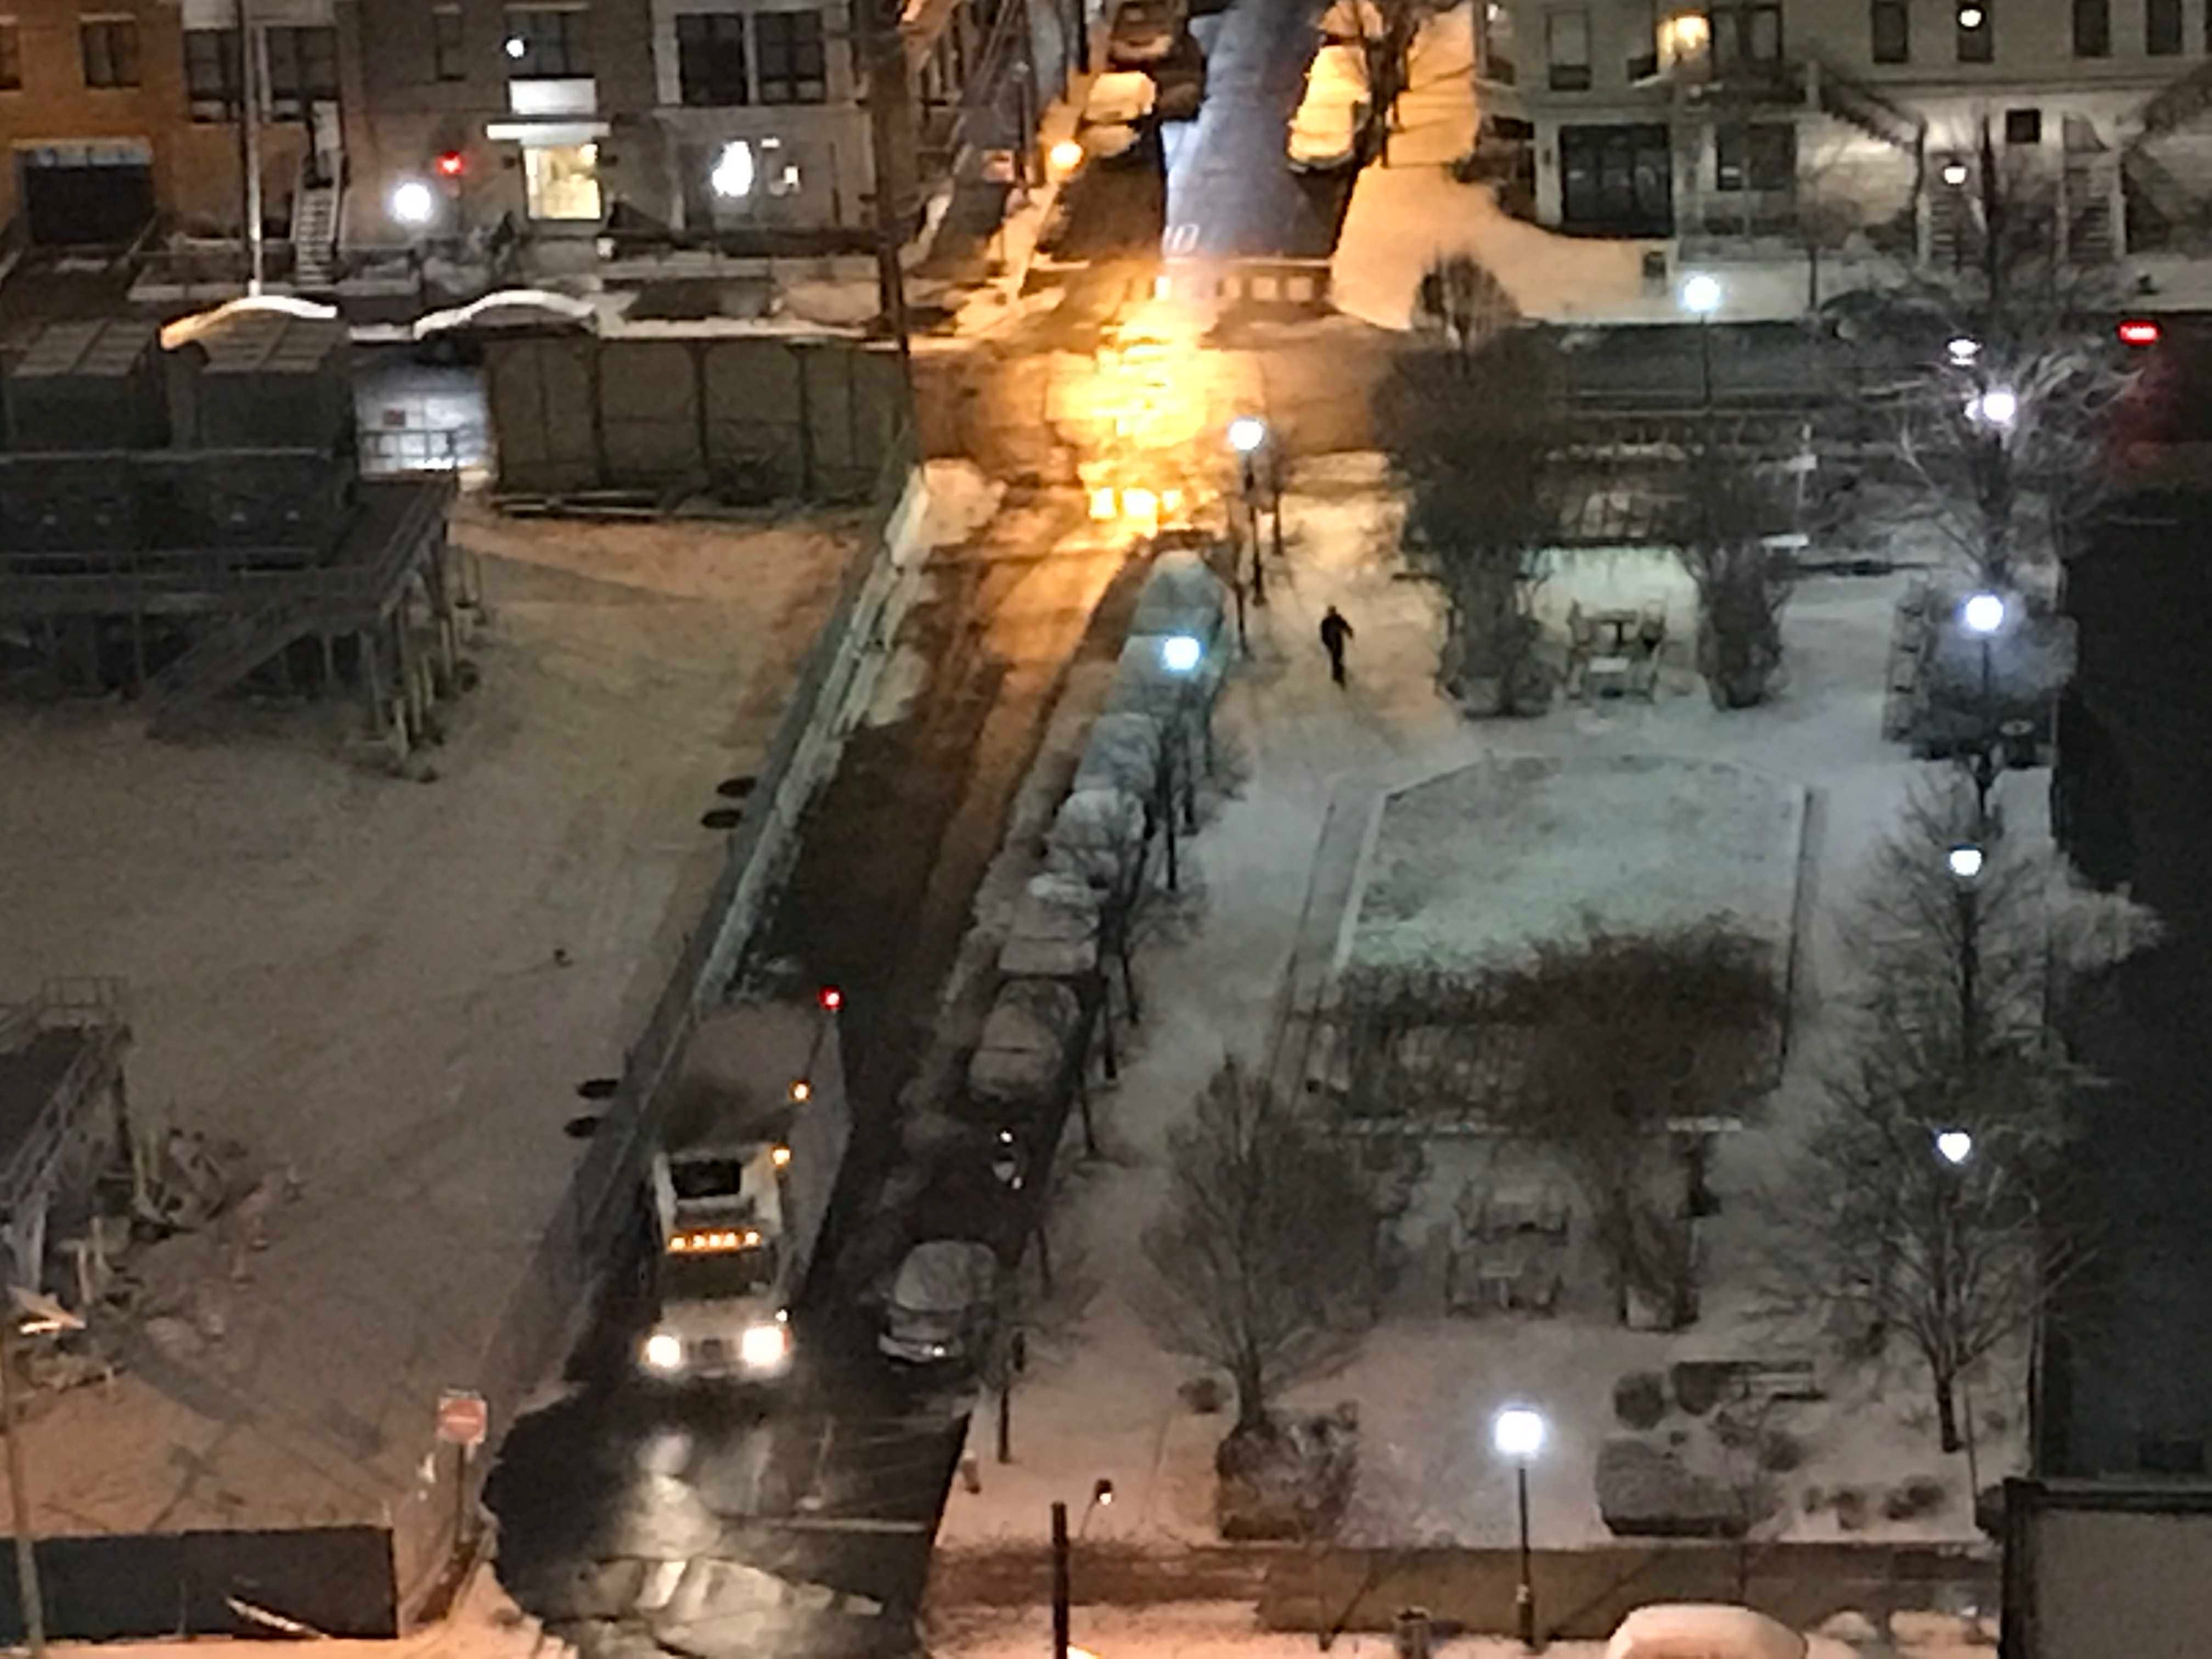 A truck makes its way down 11th Street in Hoboken at 5:45 a.m. Friday. There was little to no snow accumulation on the streets in the northwestern corner of the city.